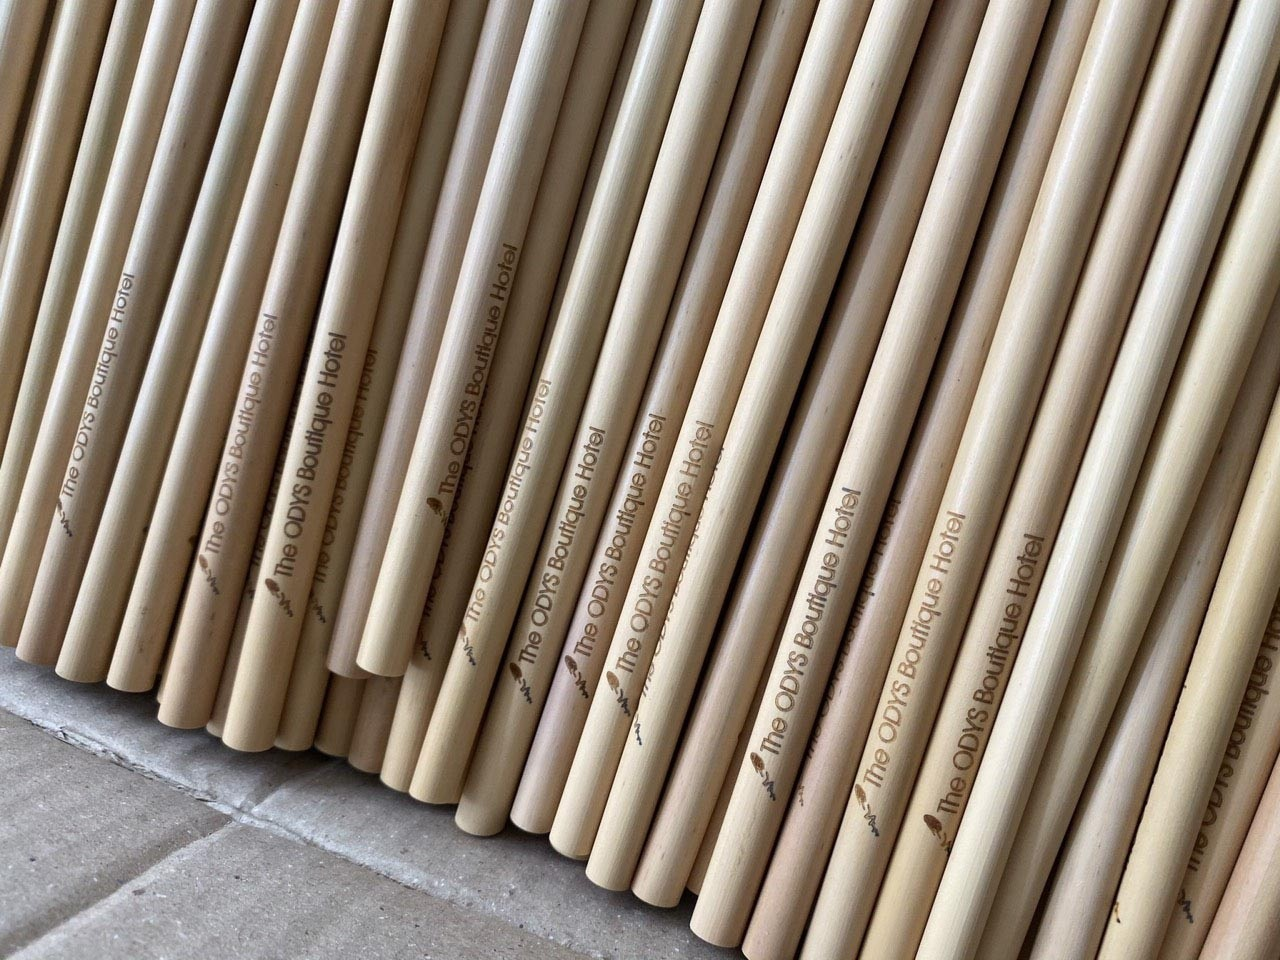 Buy wholesale bamboo straws and for export.